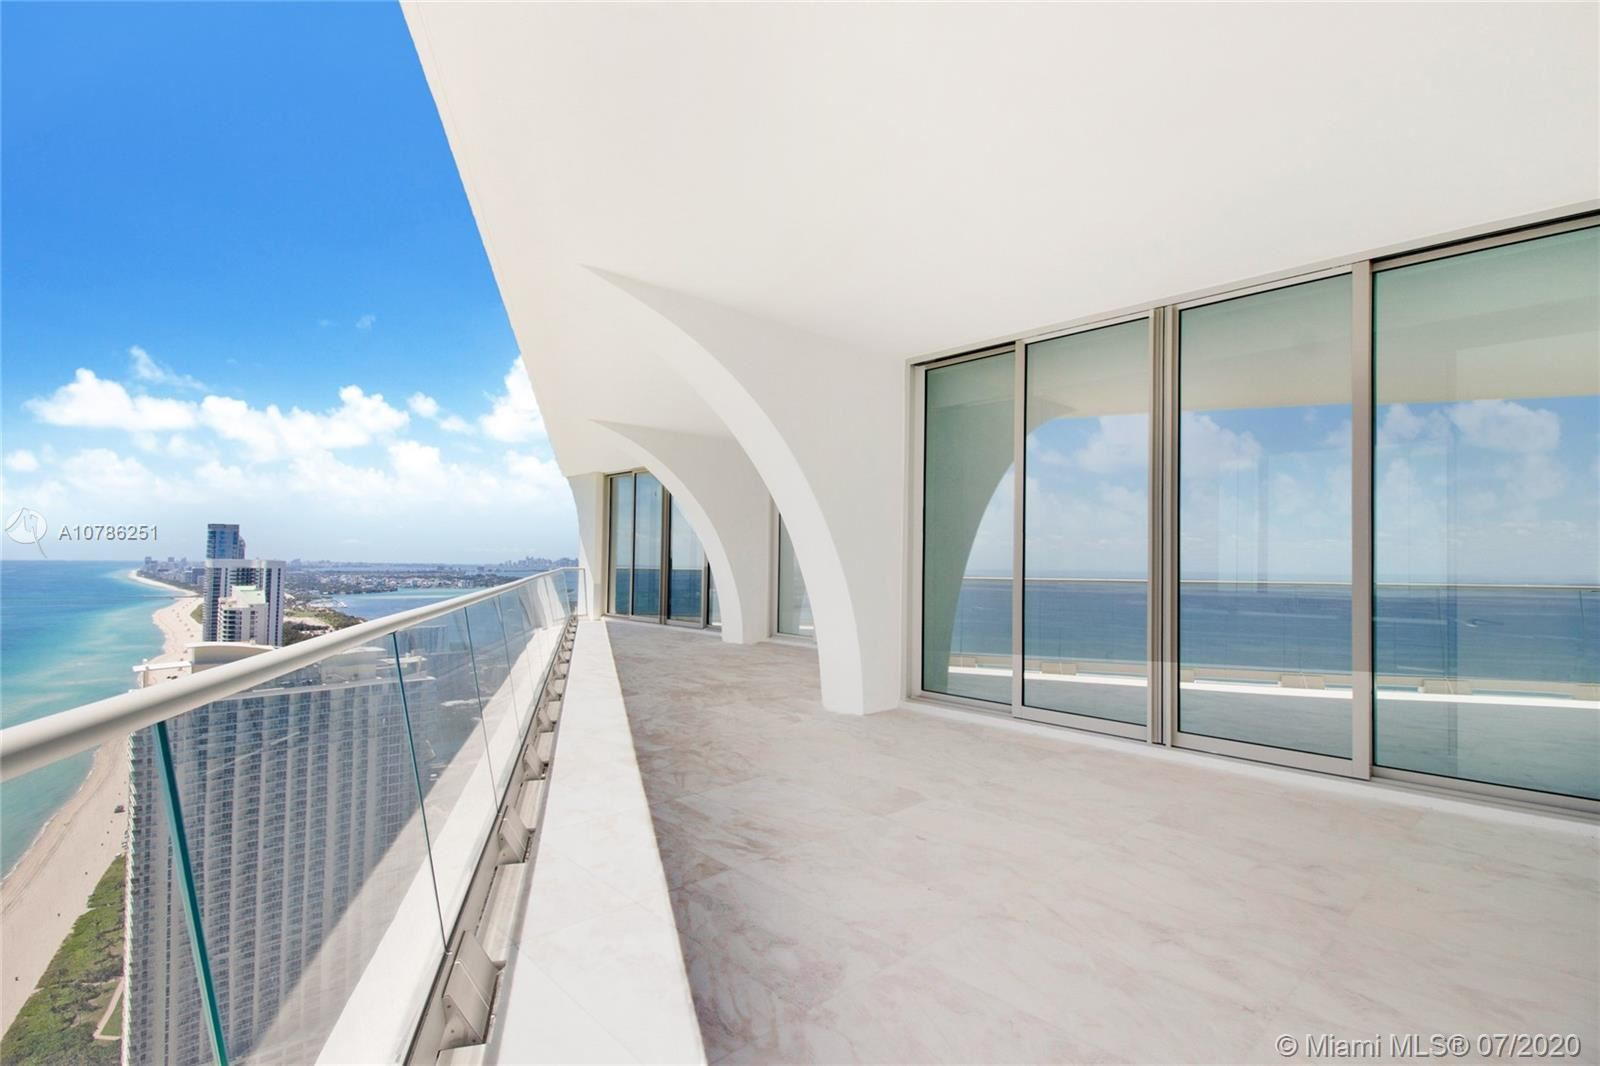 16901 Collins Ave #4901, Sunny Isles, FL 33160 - #: A10786251